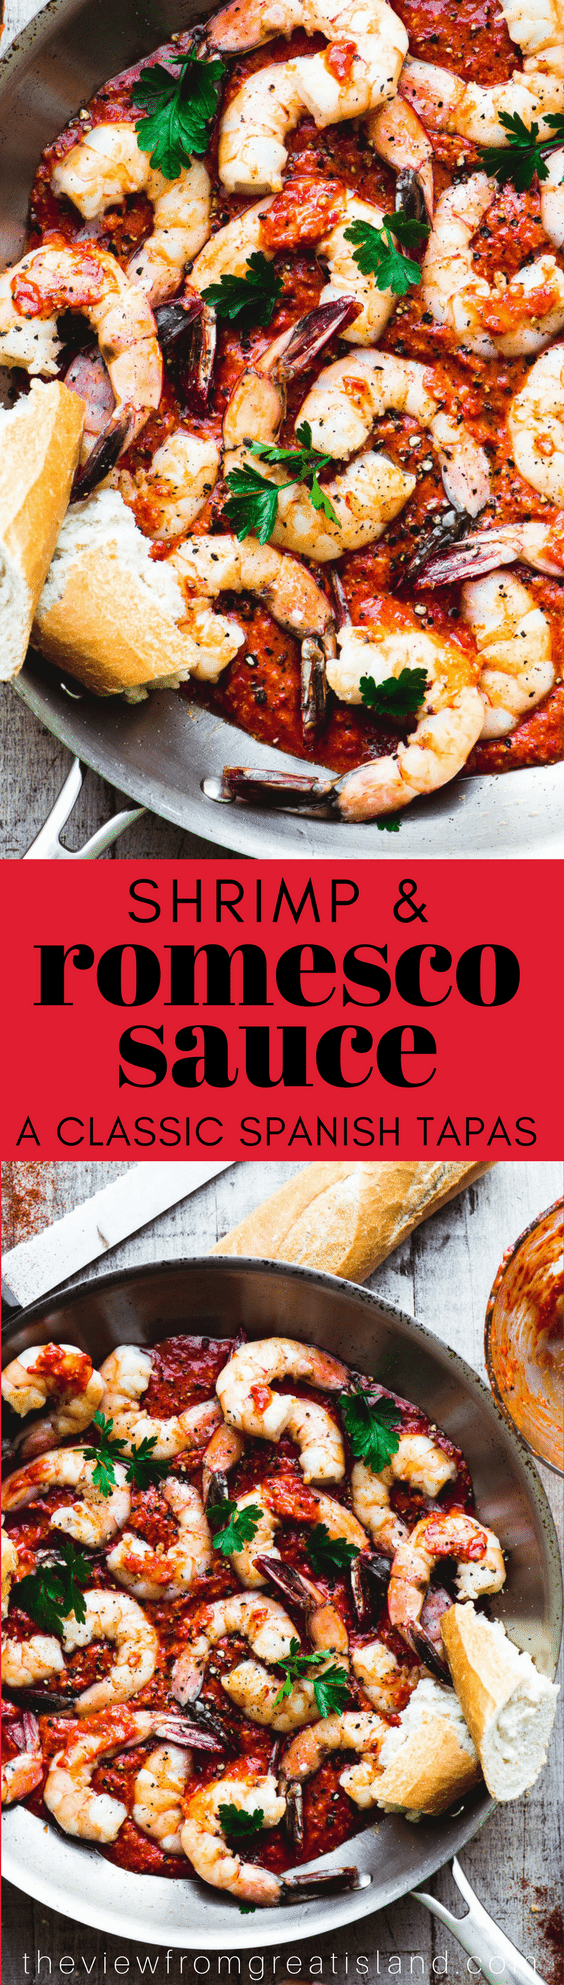 Shrimp in Romesco Sauce ~ serve this vivid grilled shrimp and spicy roasted red pepper sauce with some crusty bread for a Spanish style tapas menu. This is a wonderful way to celebrate the return of warmer weather. #appetizer #shrimp #spanishrecipe #romescosauce #fish #shellfish #dip #spread #tapas #mezze #mediterranean #healthy #glutenfree #paleo #whole30 #bellpeppers #lowfat #Mediterraneandiet #southbeachdiet #paleo #weightwatchers #whole30 #almonds